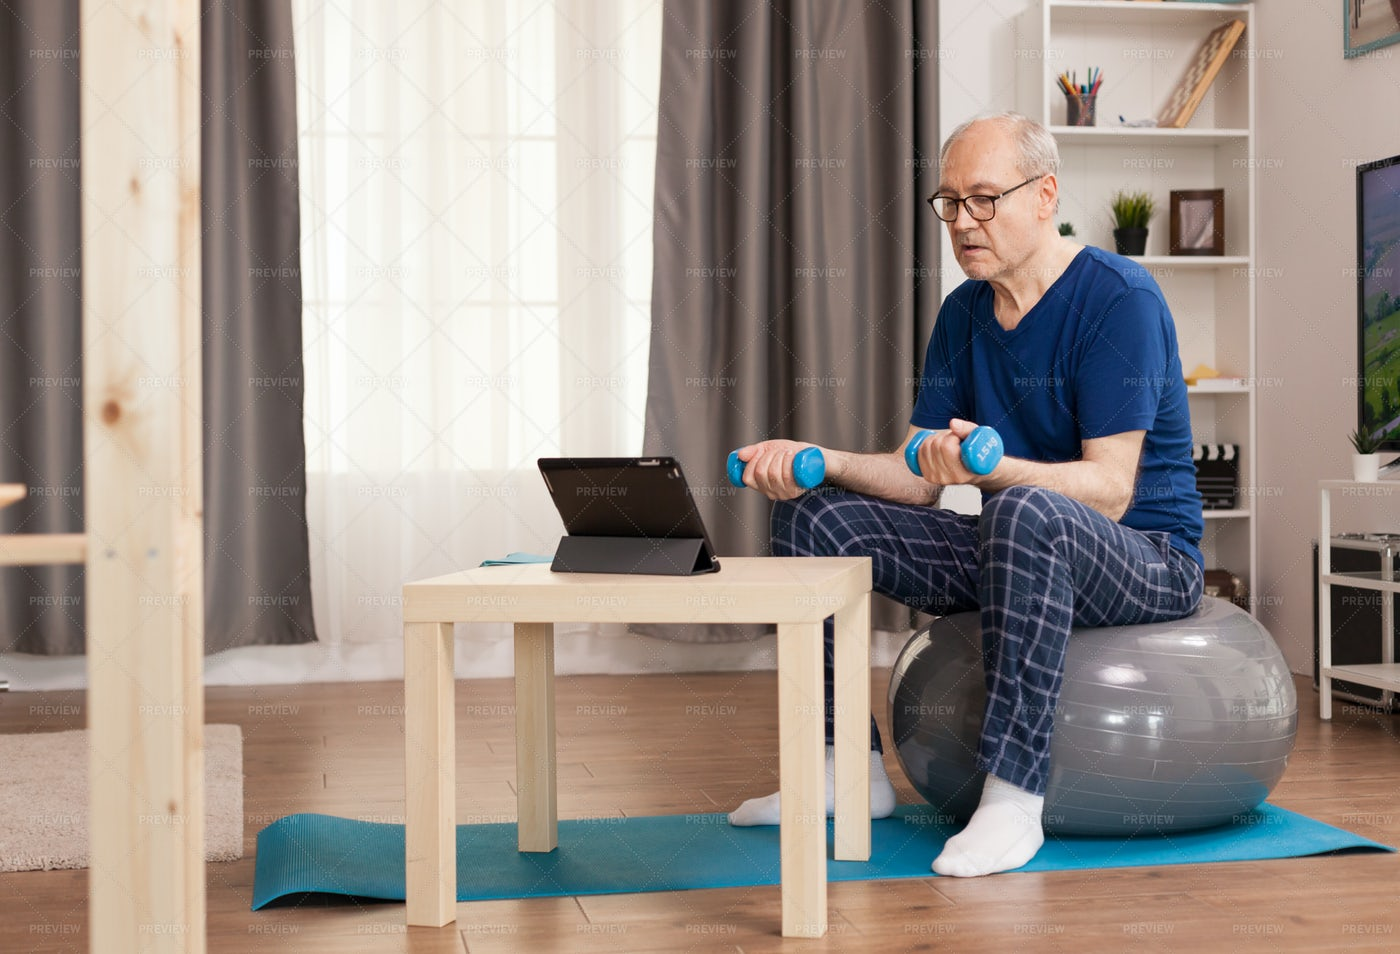 Retired Person Doing Sports At Home: Stock Photos